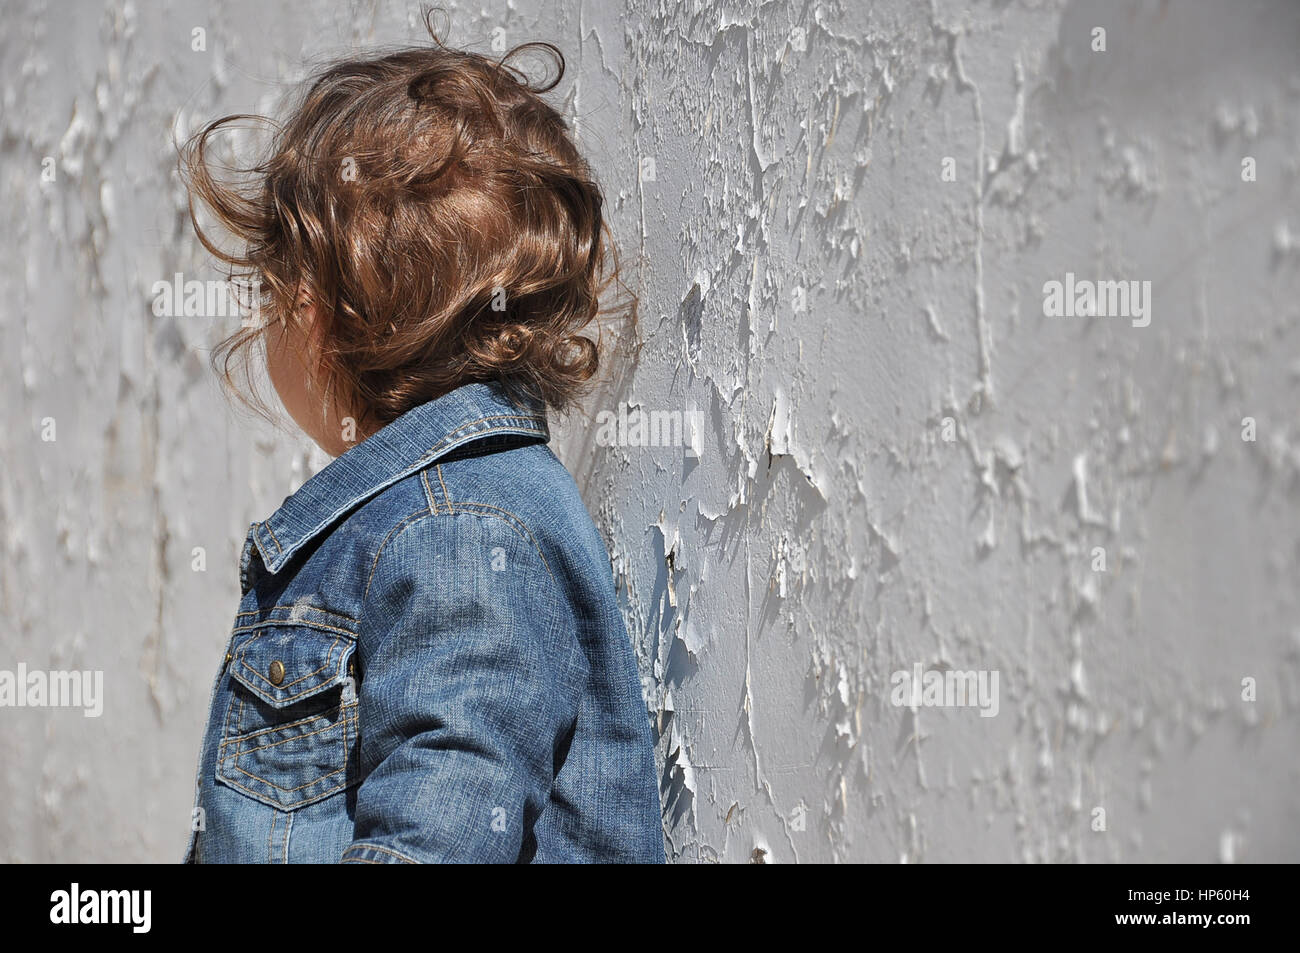 Little baby todller standing in front of a white background wall - Stock Image